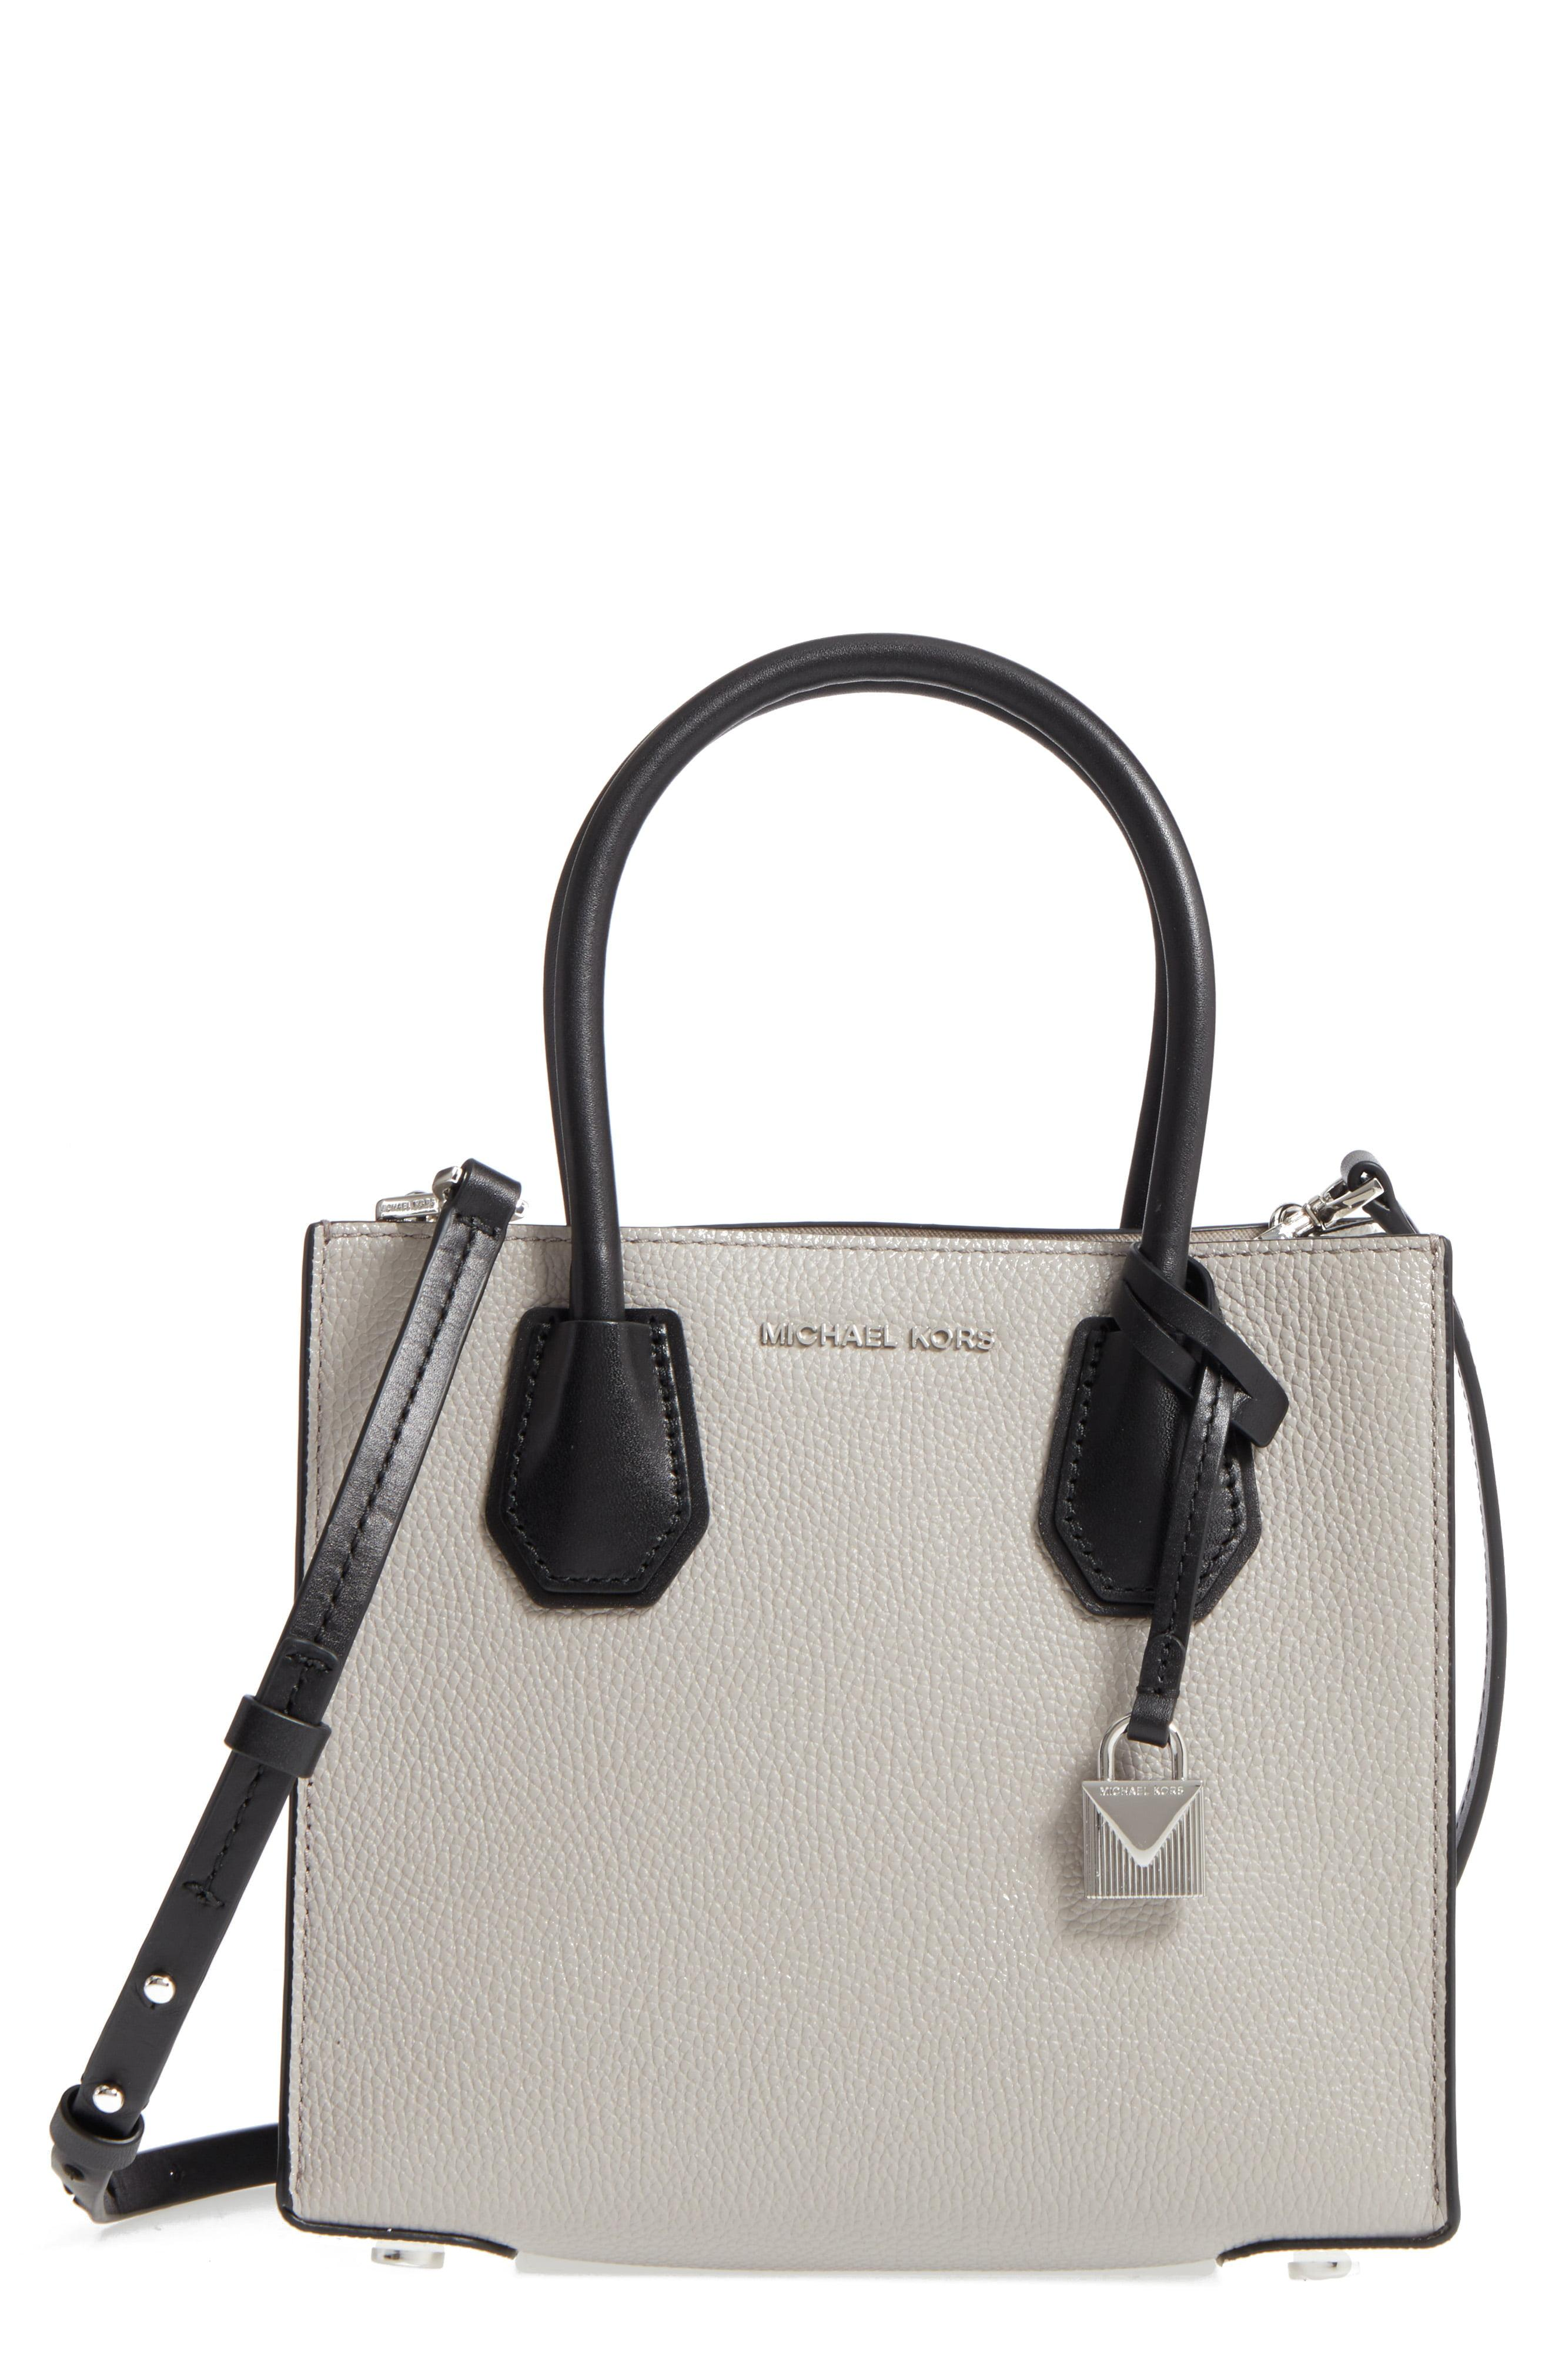 6e1fa4108ebb Lyst - MICHAEL Michael Kors Medium Mercer Leather Tote in Black